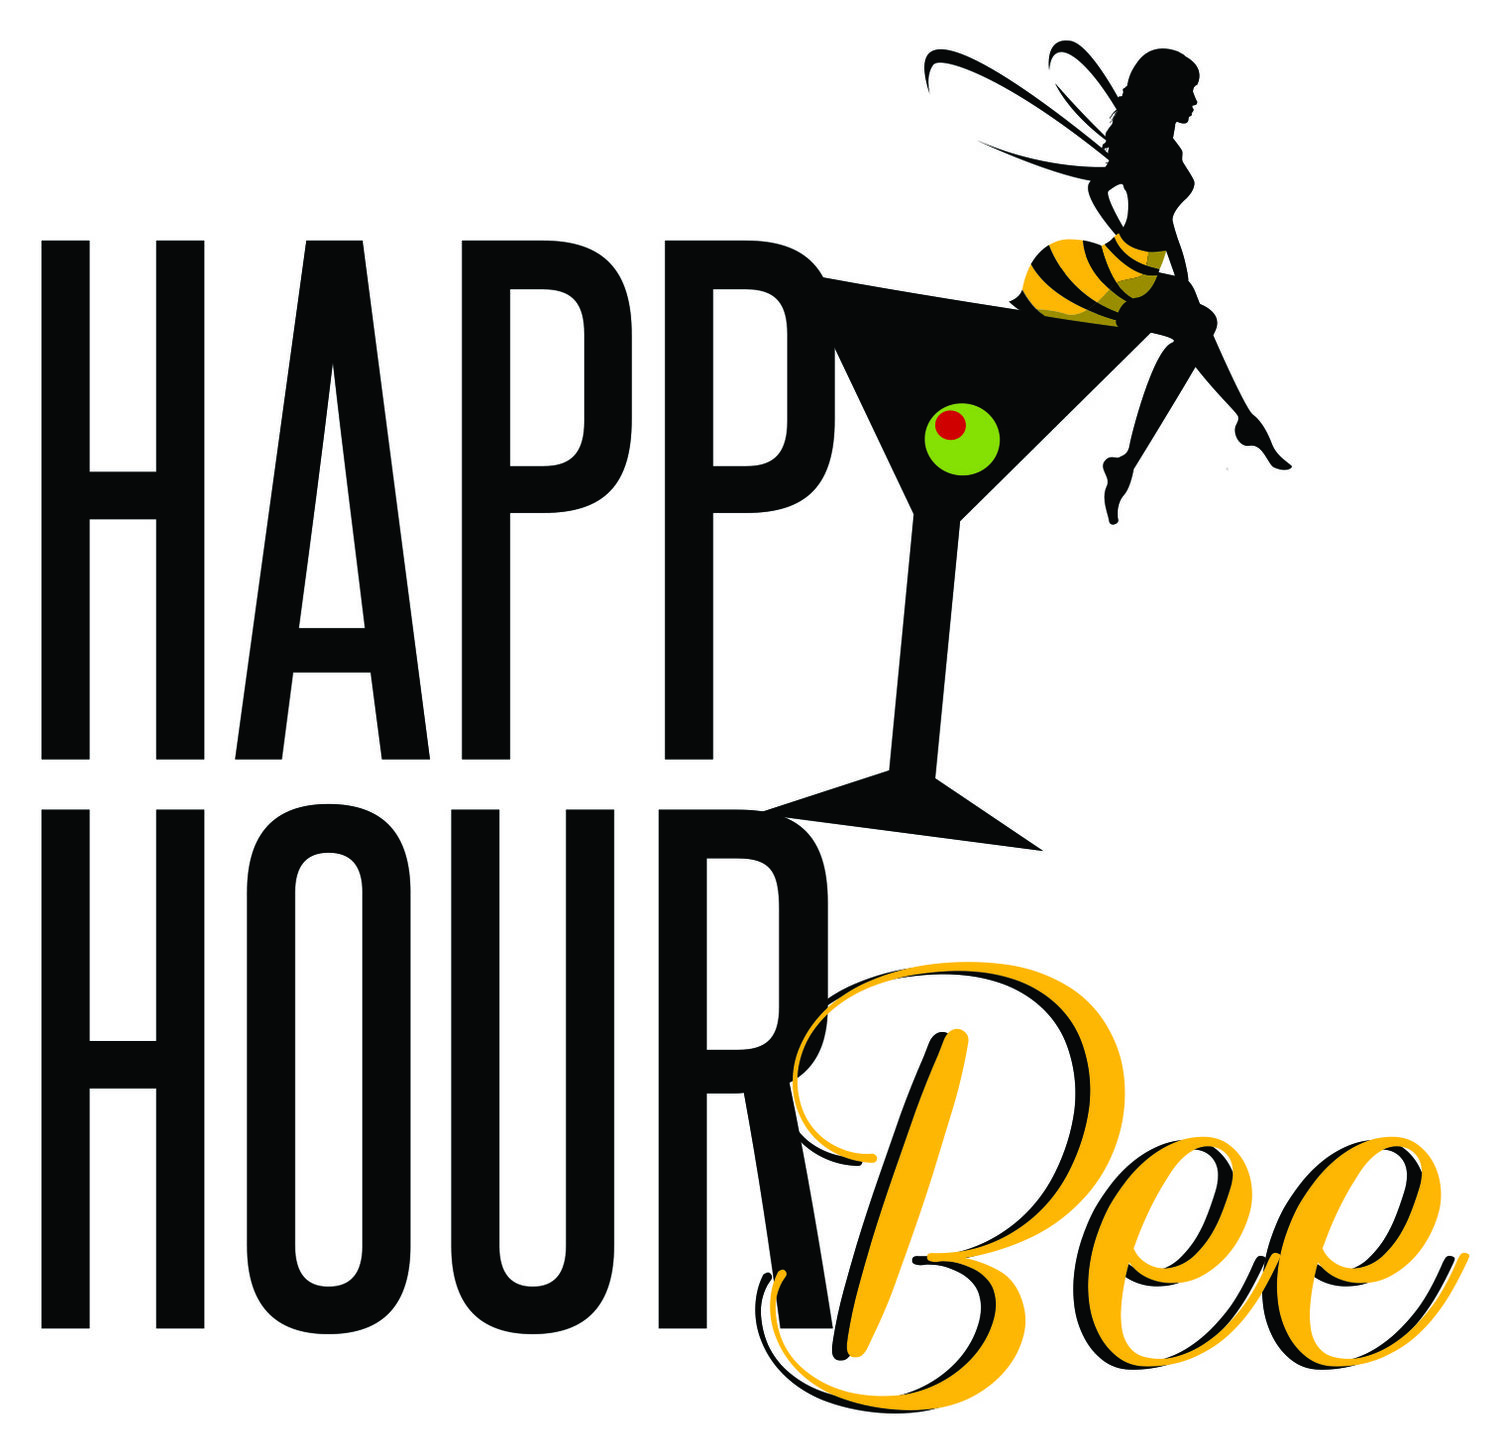 Happy Hour Bee